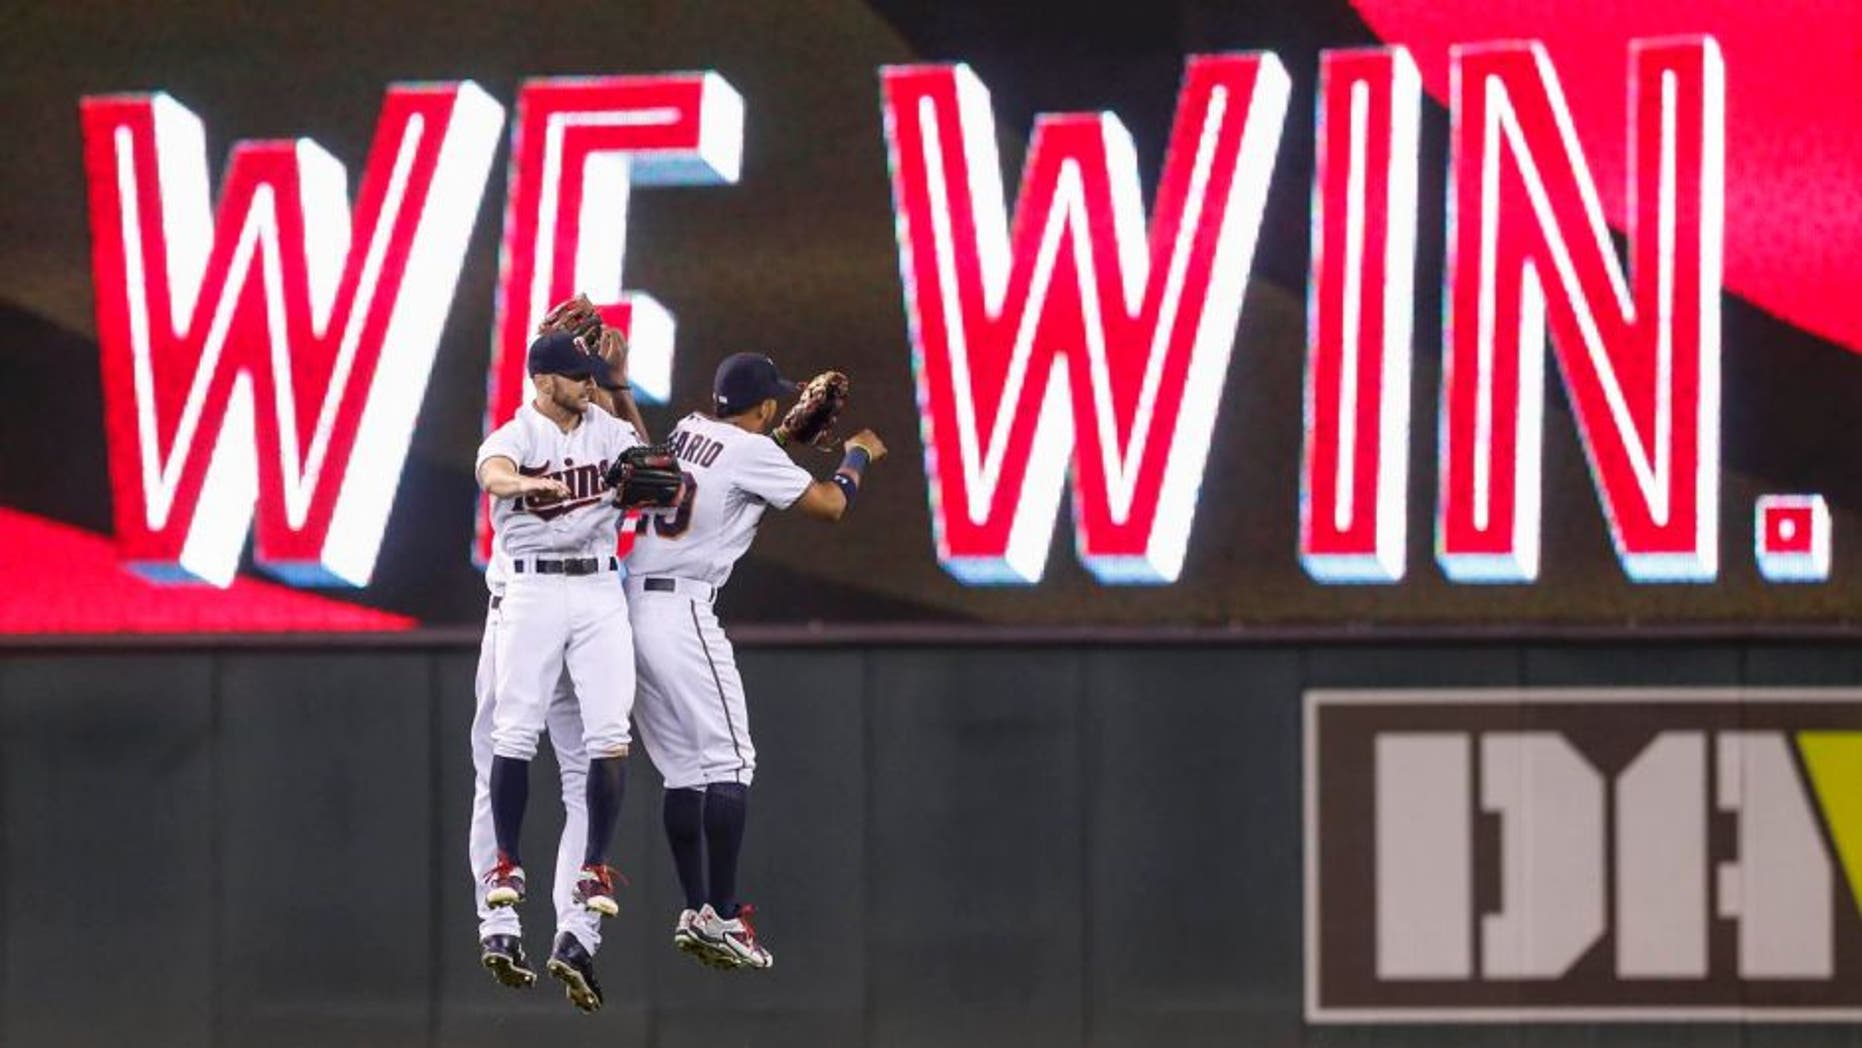 Friday, Aug. 28: Minnesota Twins left fielder Shane Robinson (left), center fielder Byron Buxton (back) and right fielder Eddie Rosario celebrate the 3-0 win over the Houston Astros at Target Field.